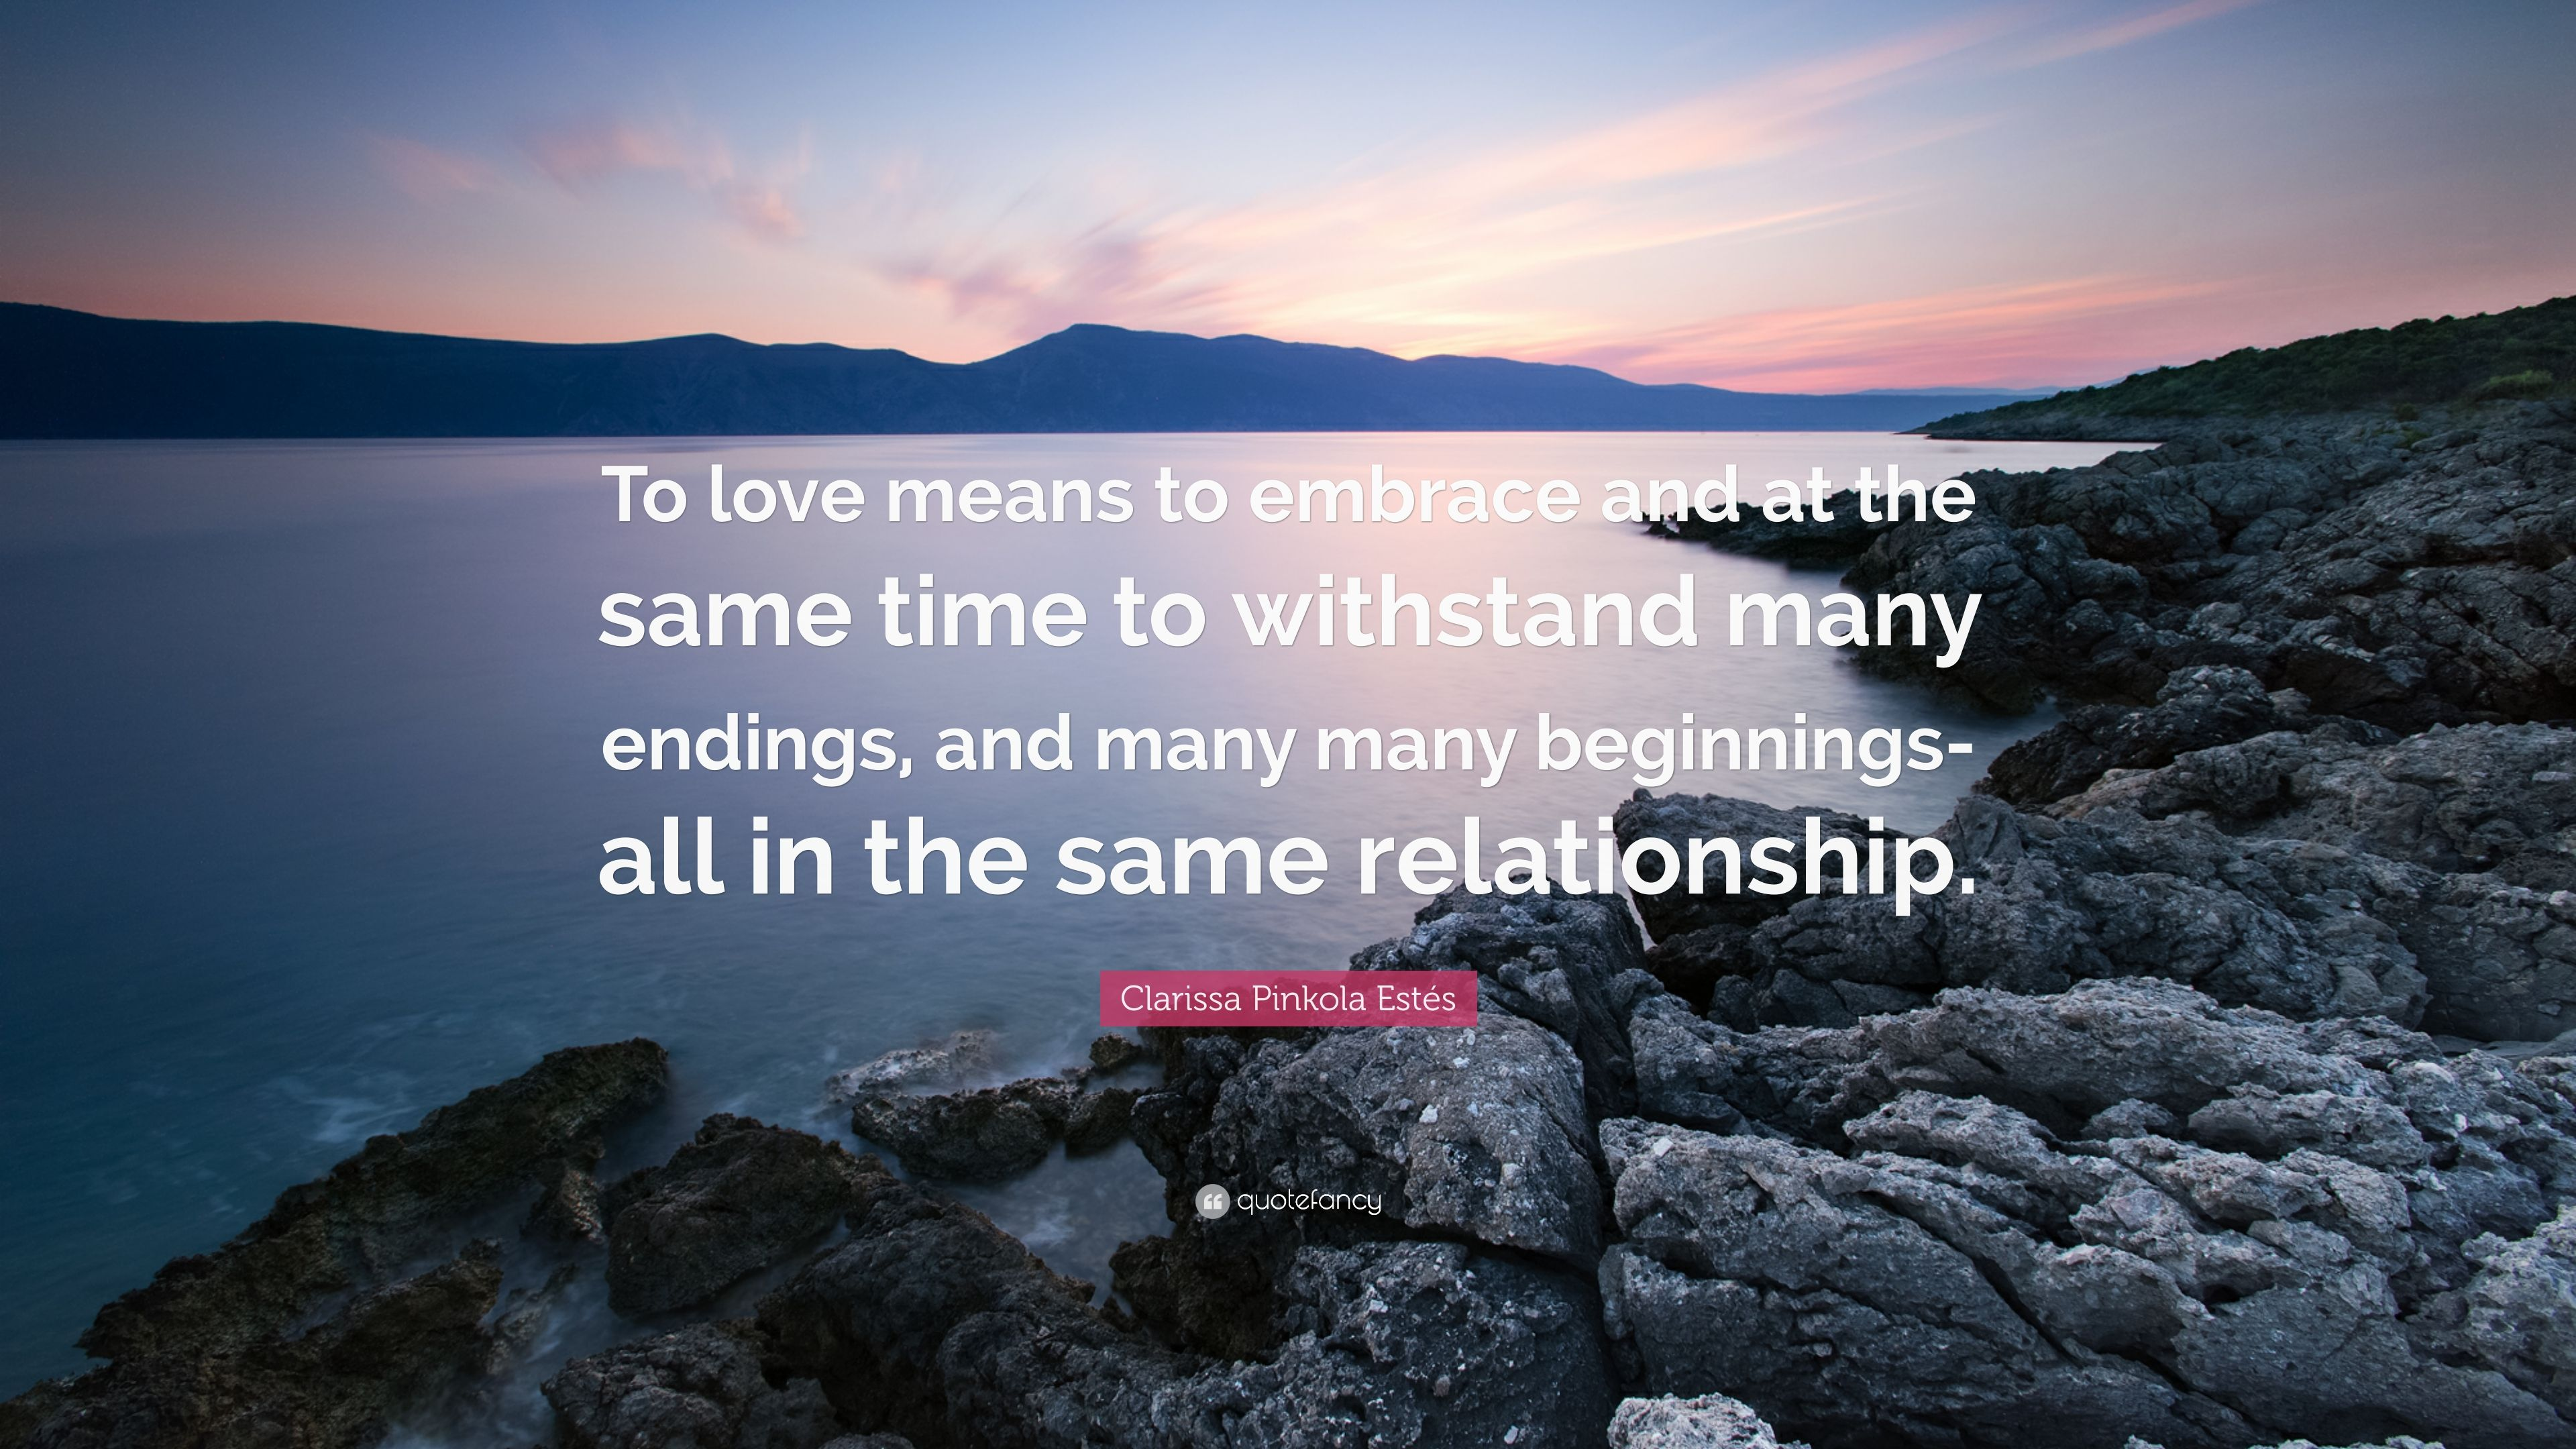 Clarissa Pinkola Estés Quote: U201cTo Love Means To Embrace And At The Same Time